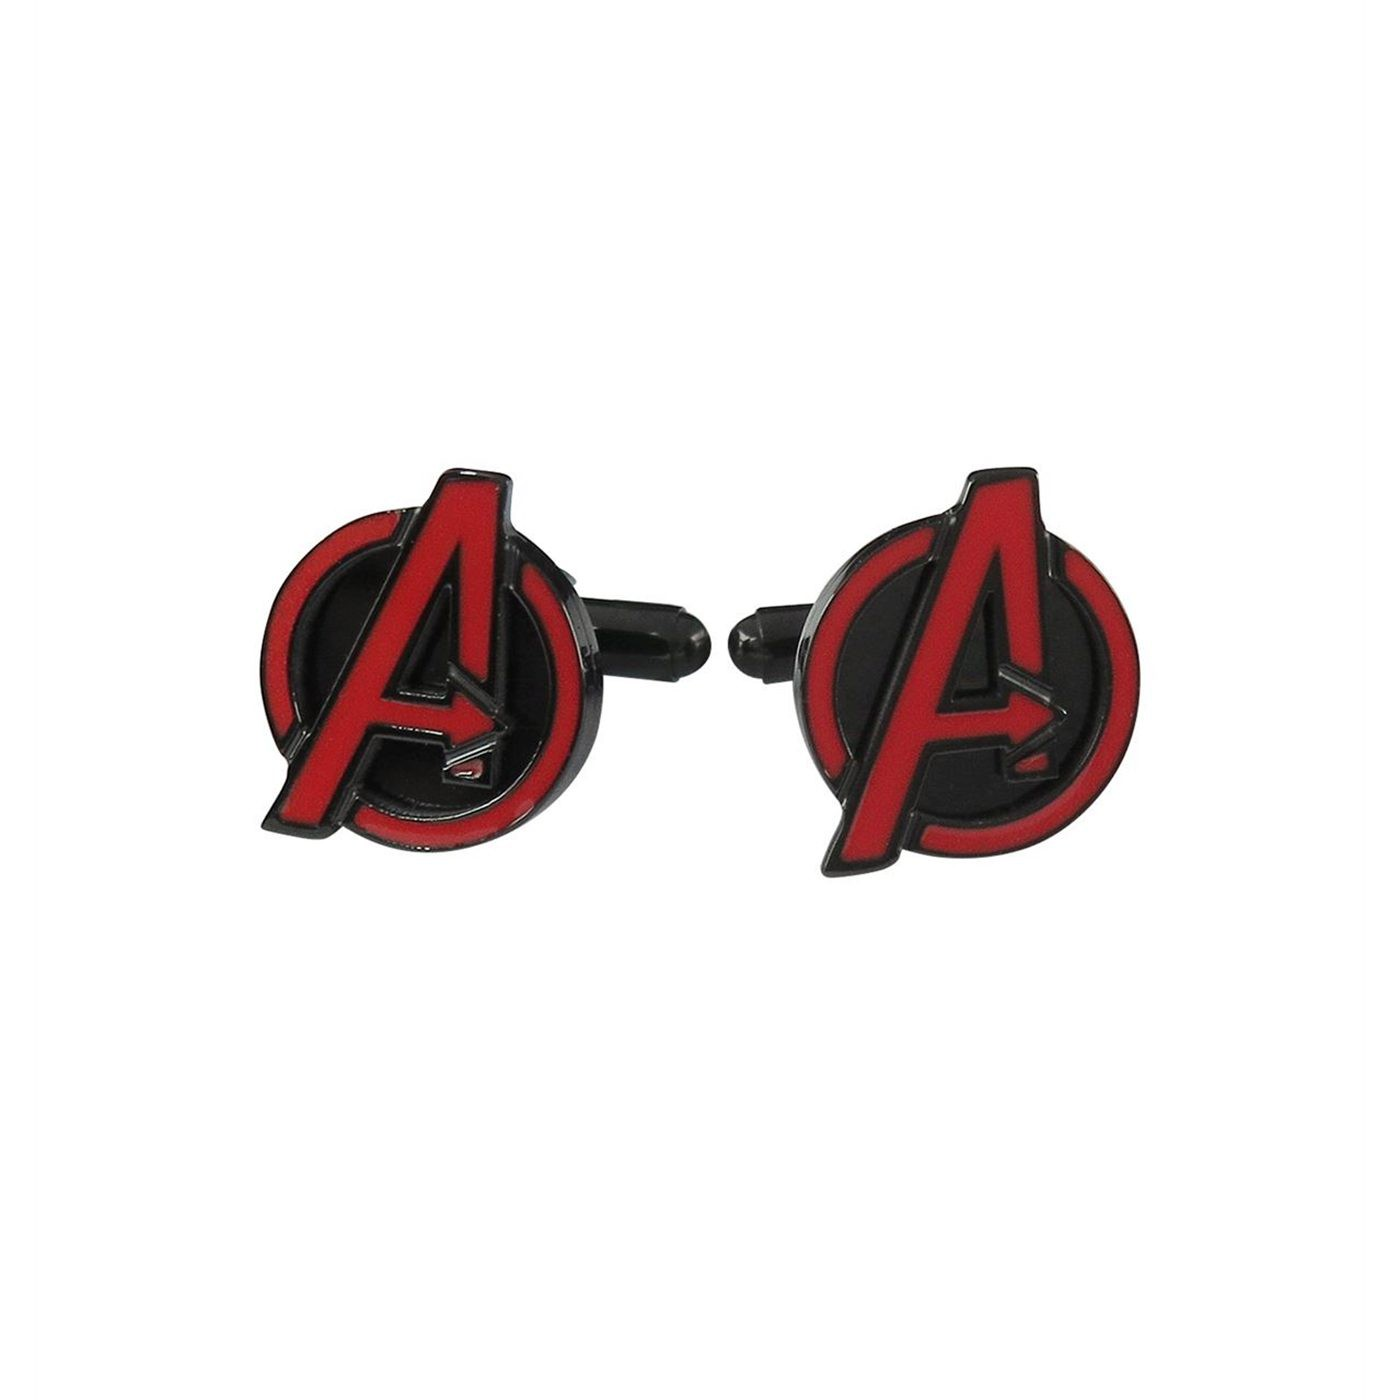 Avengers Red Black Stainless Steel Plated Cufflinks